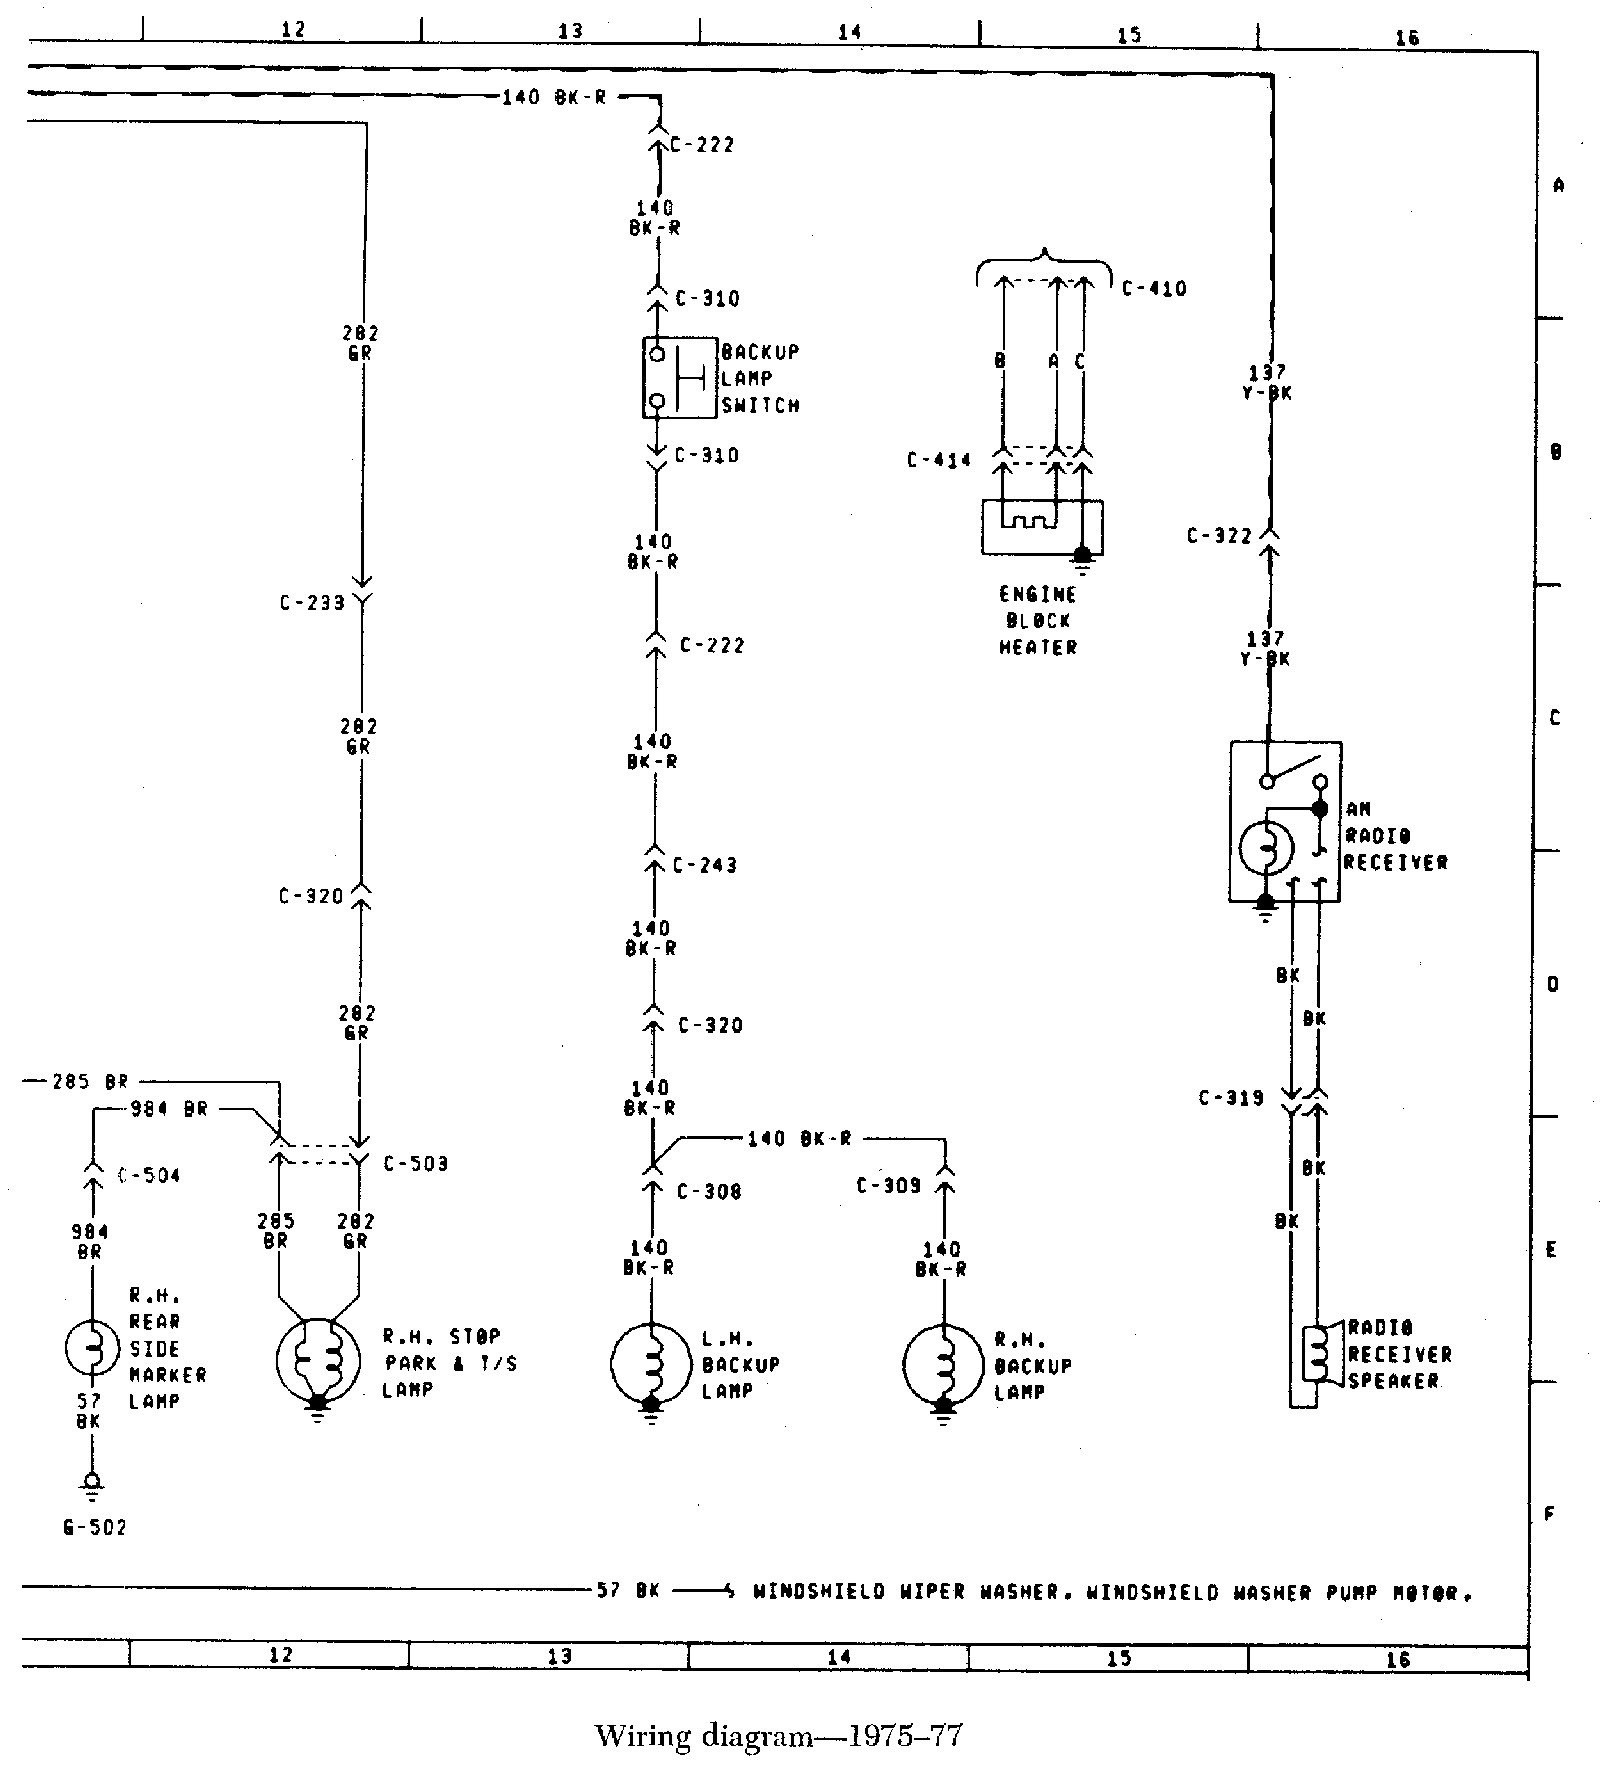 3 Position Selector Switch Wiring Diagram 3 Position Selector Switch Wiring Diagram Fresh Wiring Diagram for A Of 3 Position Selector Switch Wiring Diagram